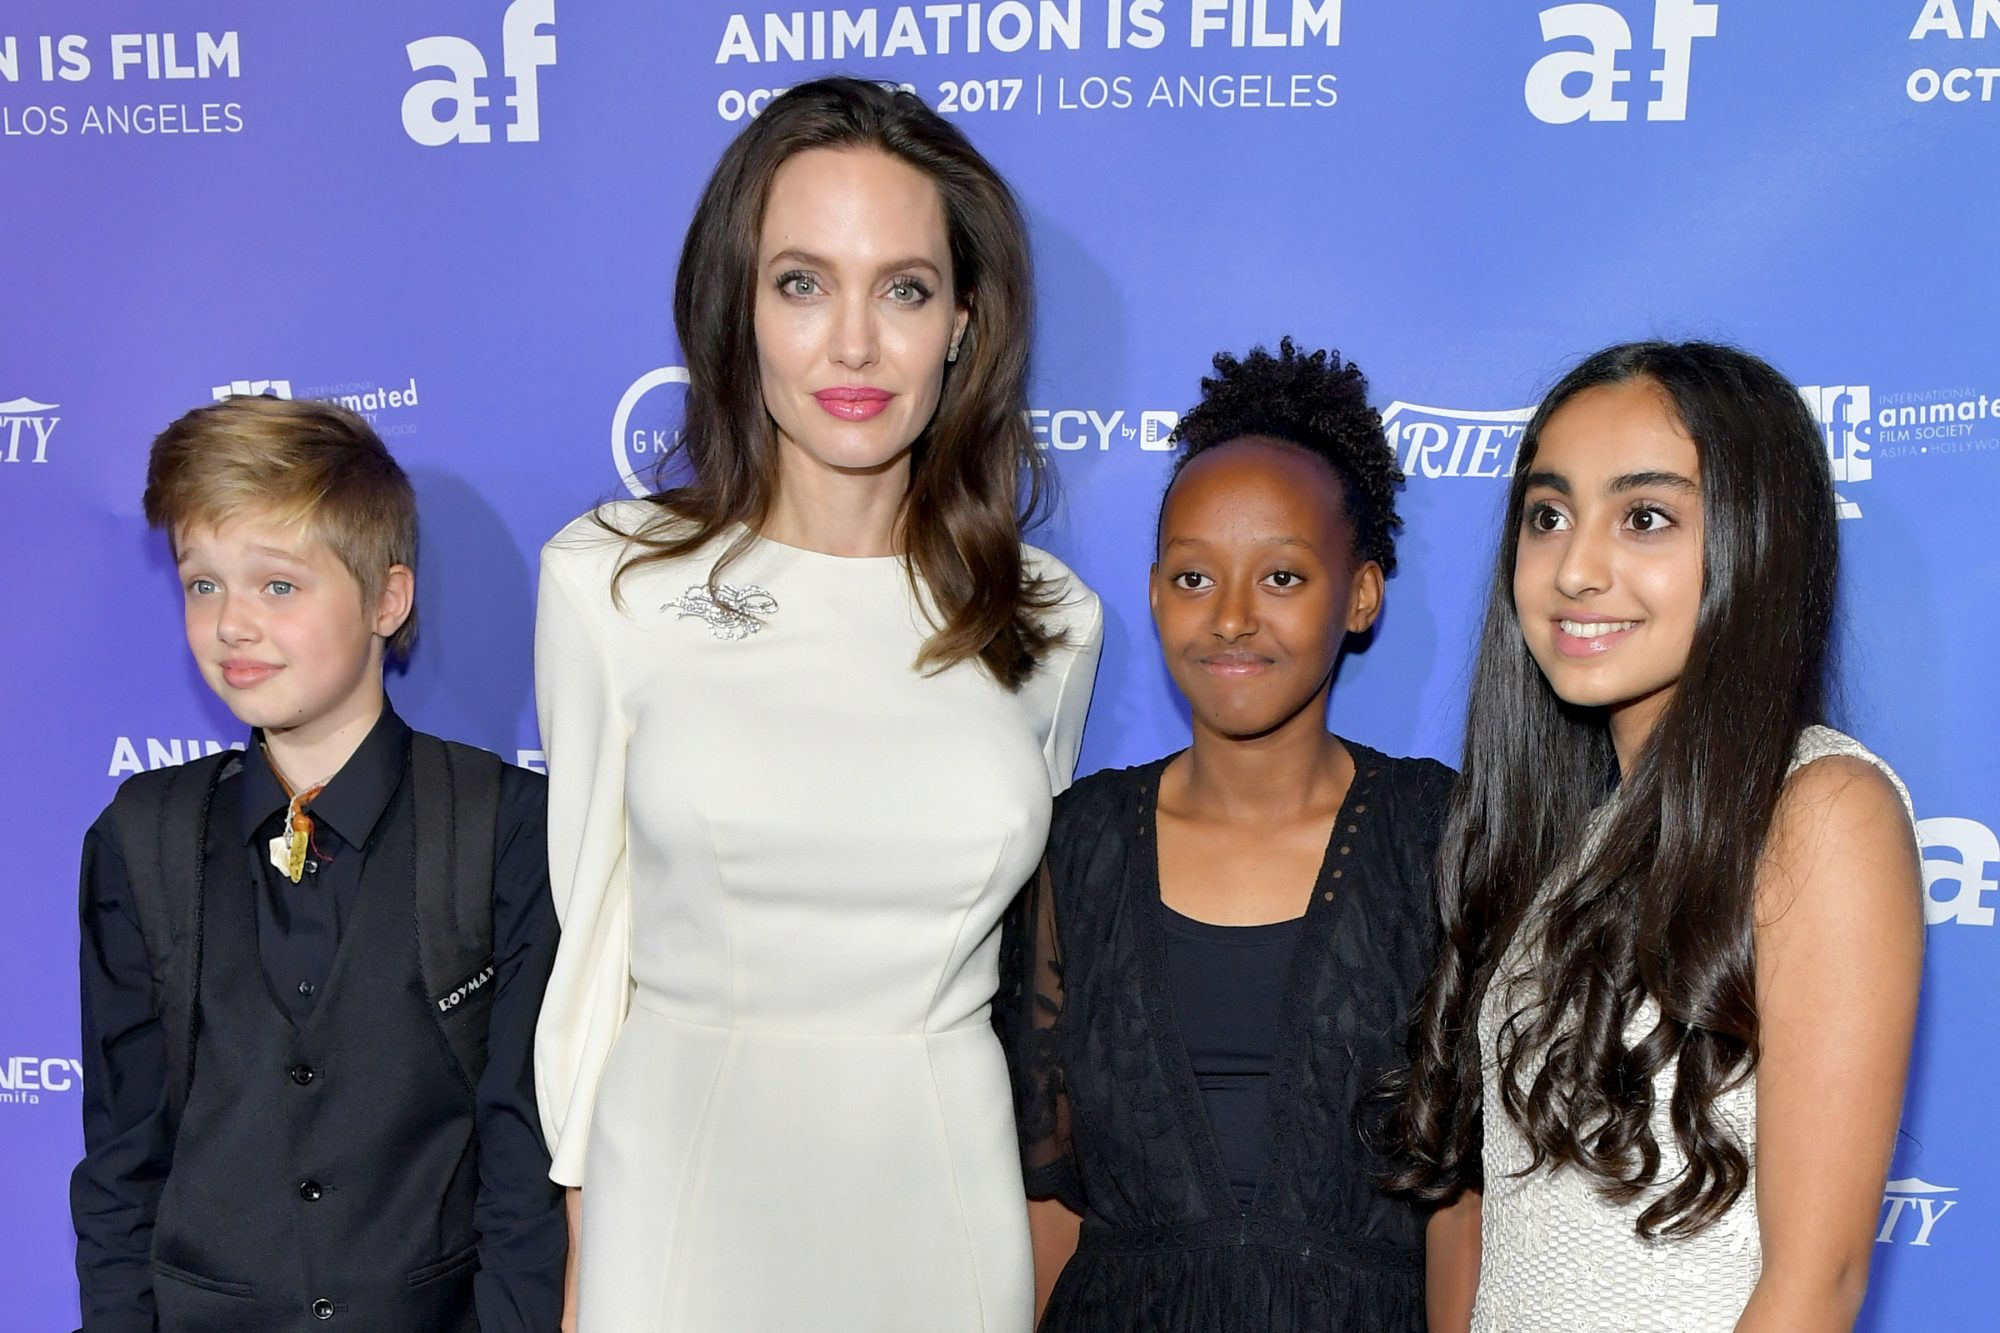 Angelina Jolie's Daughter Shiloh Jolie-Pitt Recovering After Breaking Her Arm While Snowboarding